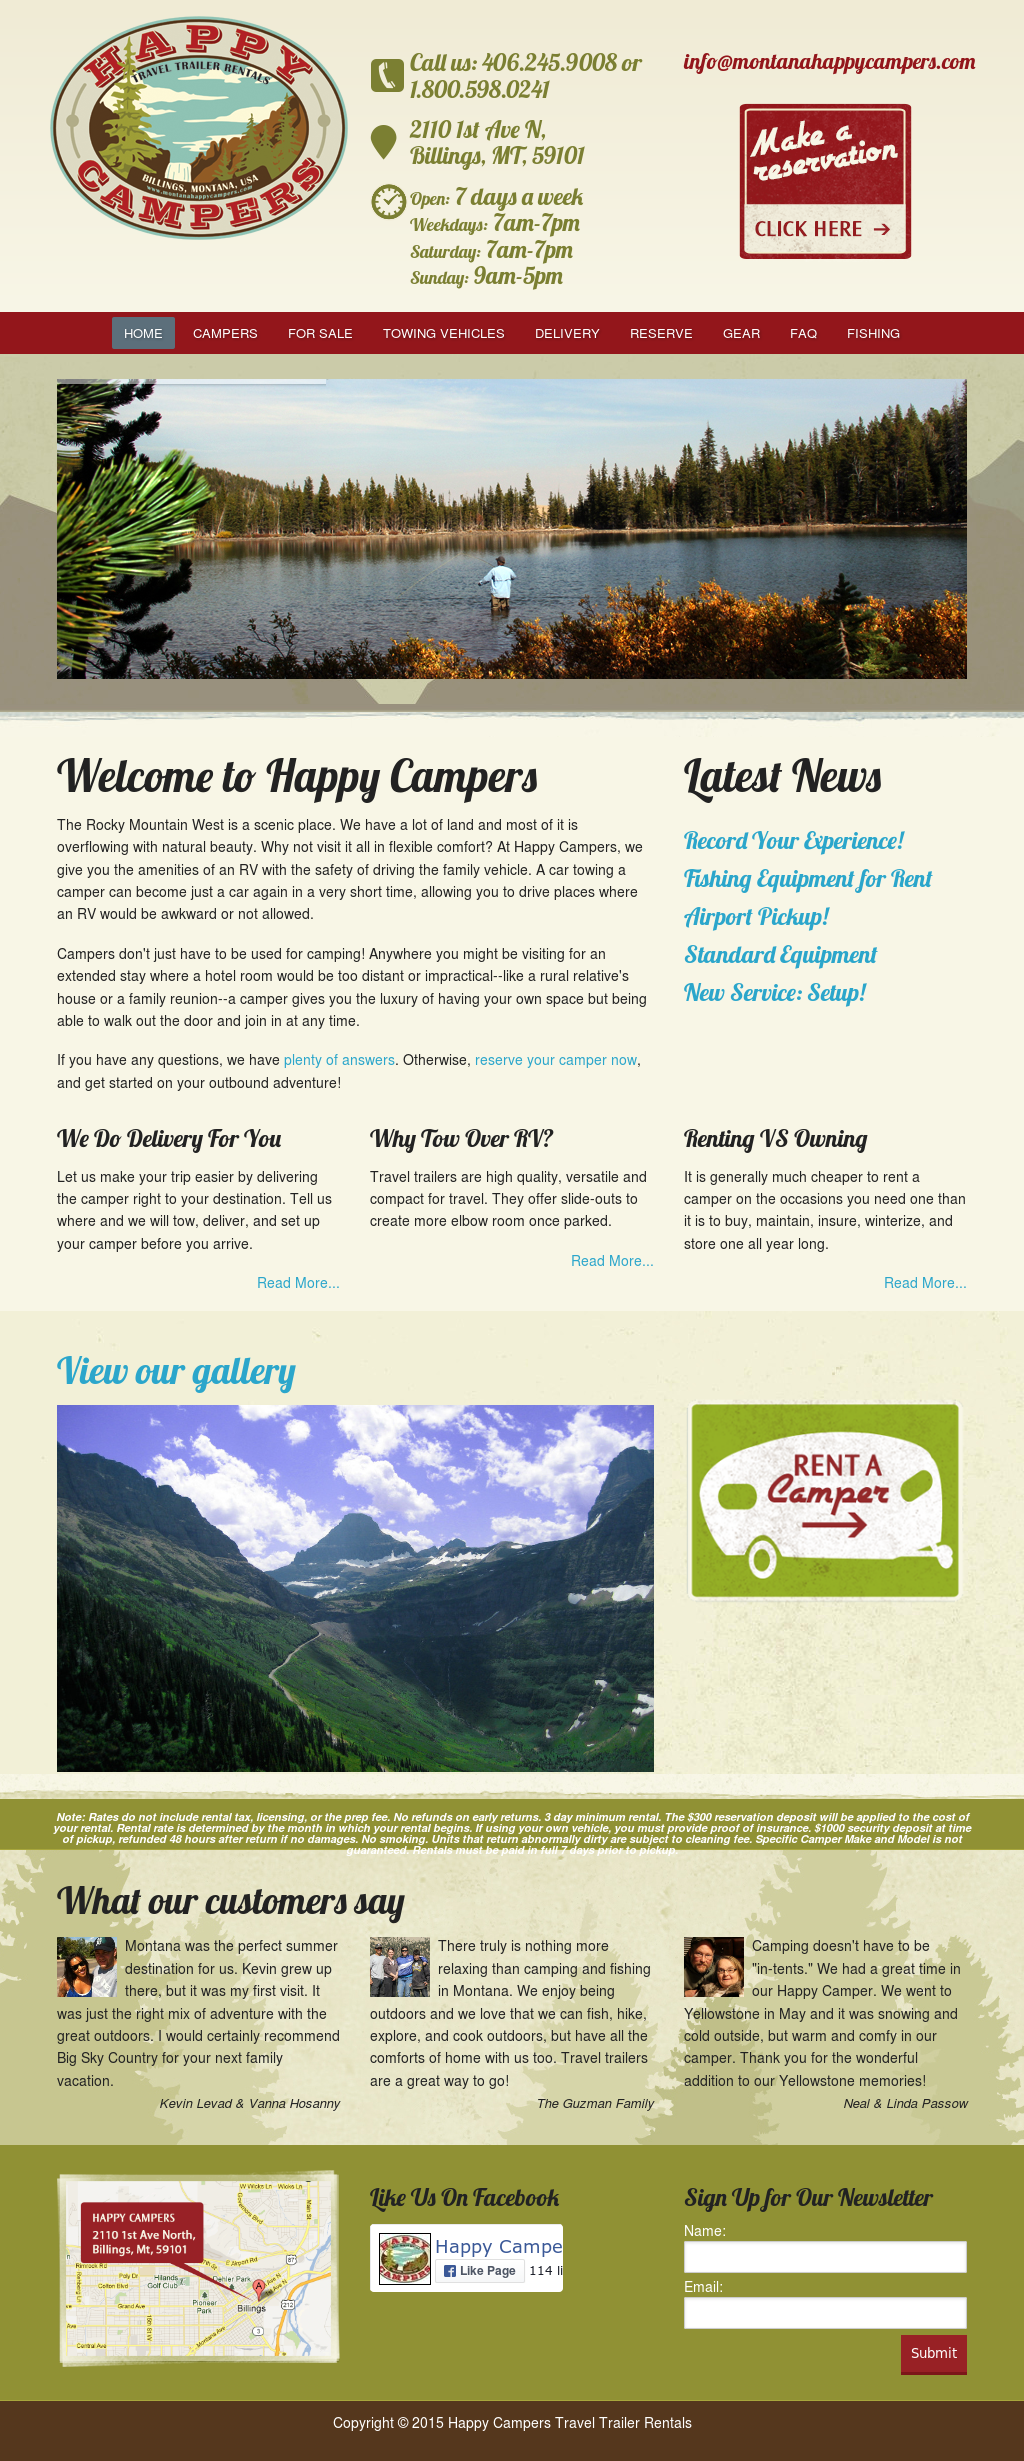 Montanahappycampers Competitors, Revenue and Employees